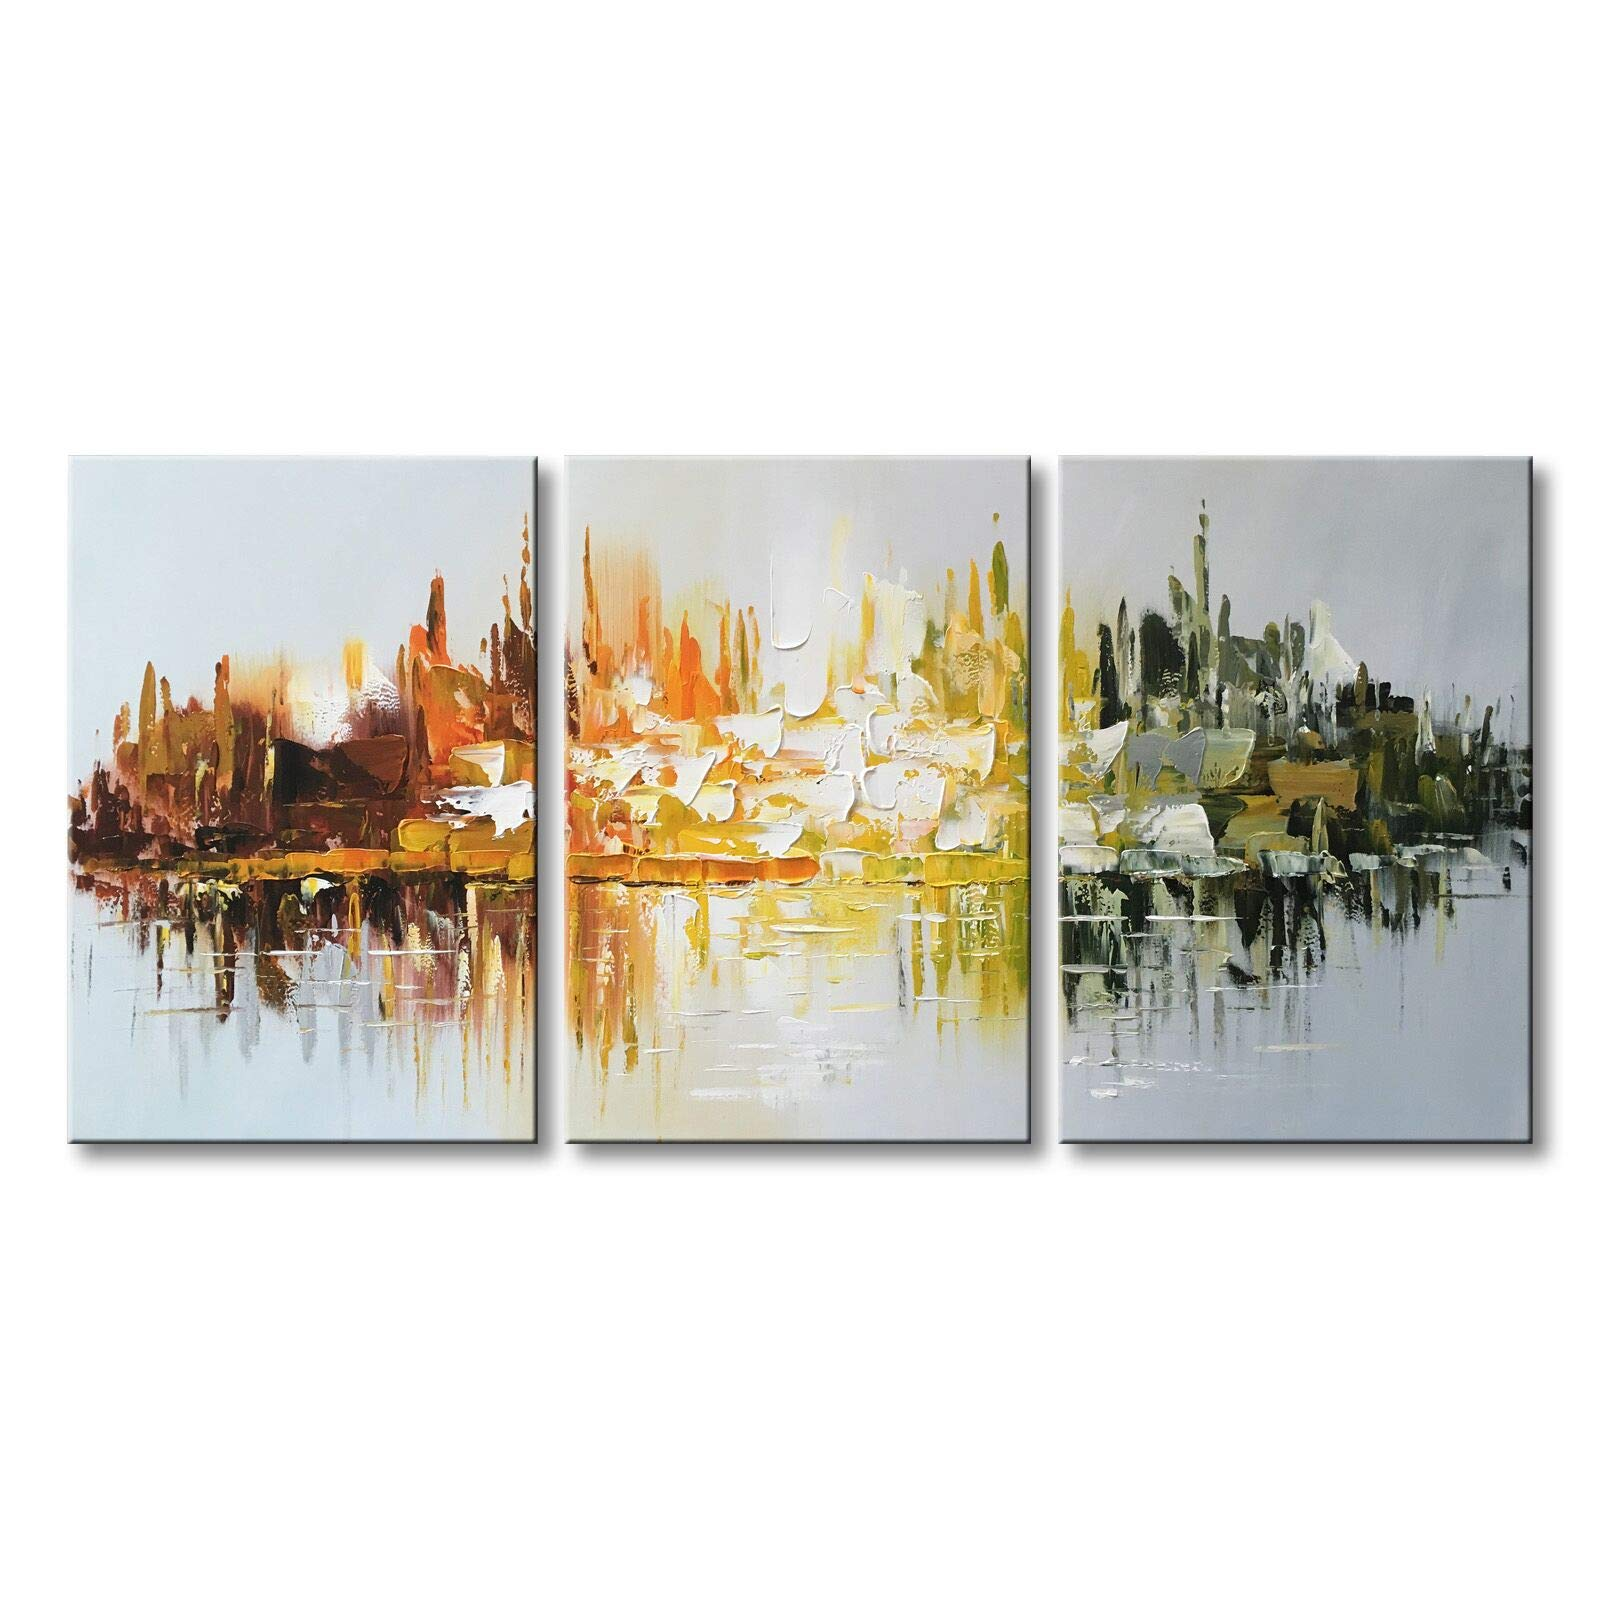 Winpeak Art Hand-Painted Abstract Canvas Wall Art Modern Landscape Oil Painting for Living Room Contemporary Artwork Decor Hanging Framed Ready to Hang (48'' W x 24'' H (16''x24'' x3pcs))